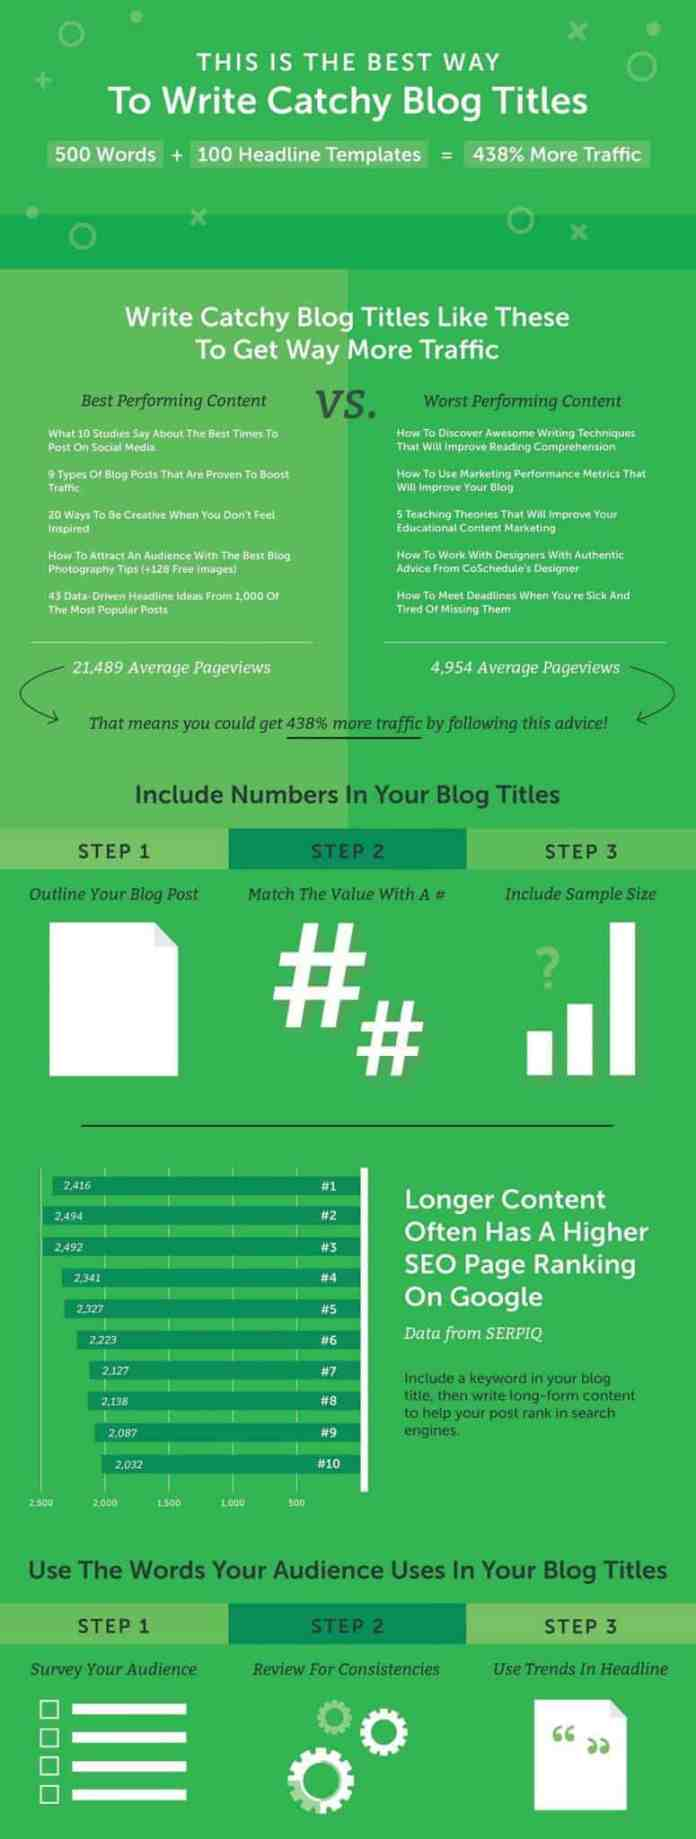 make-catchy-Blog-Titles-infographic